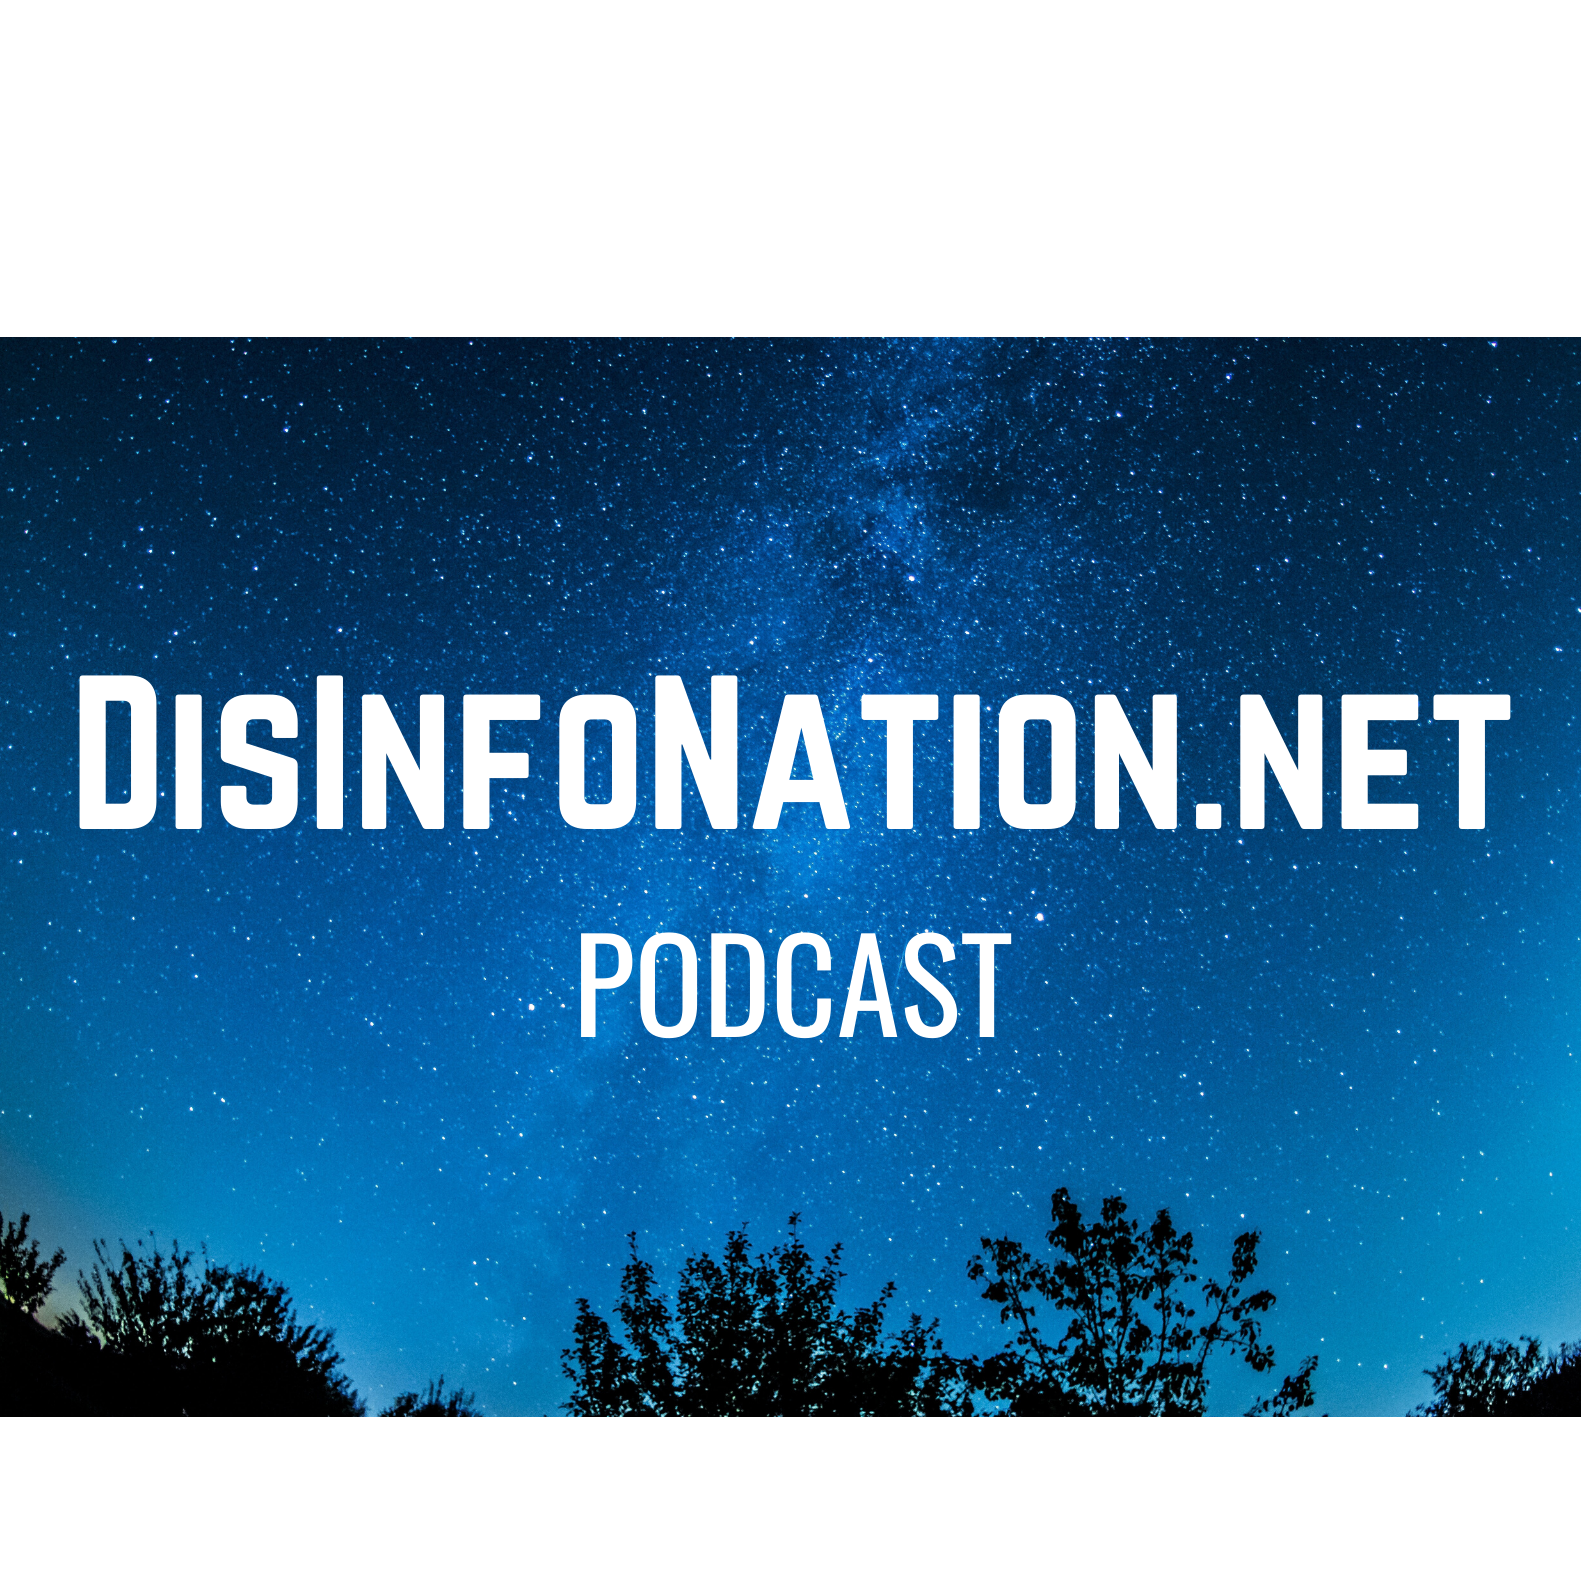 DisInfoNation.net Podcast